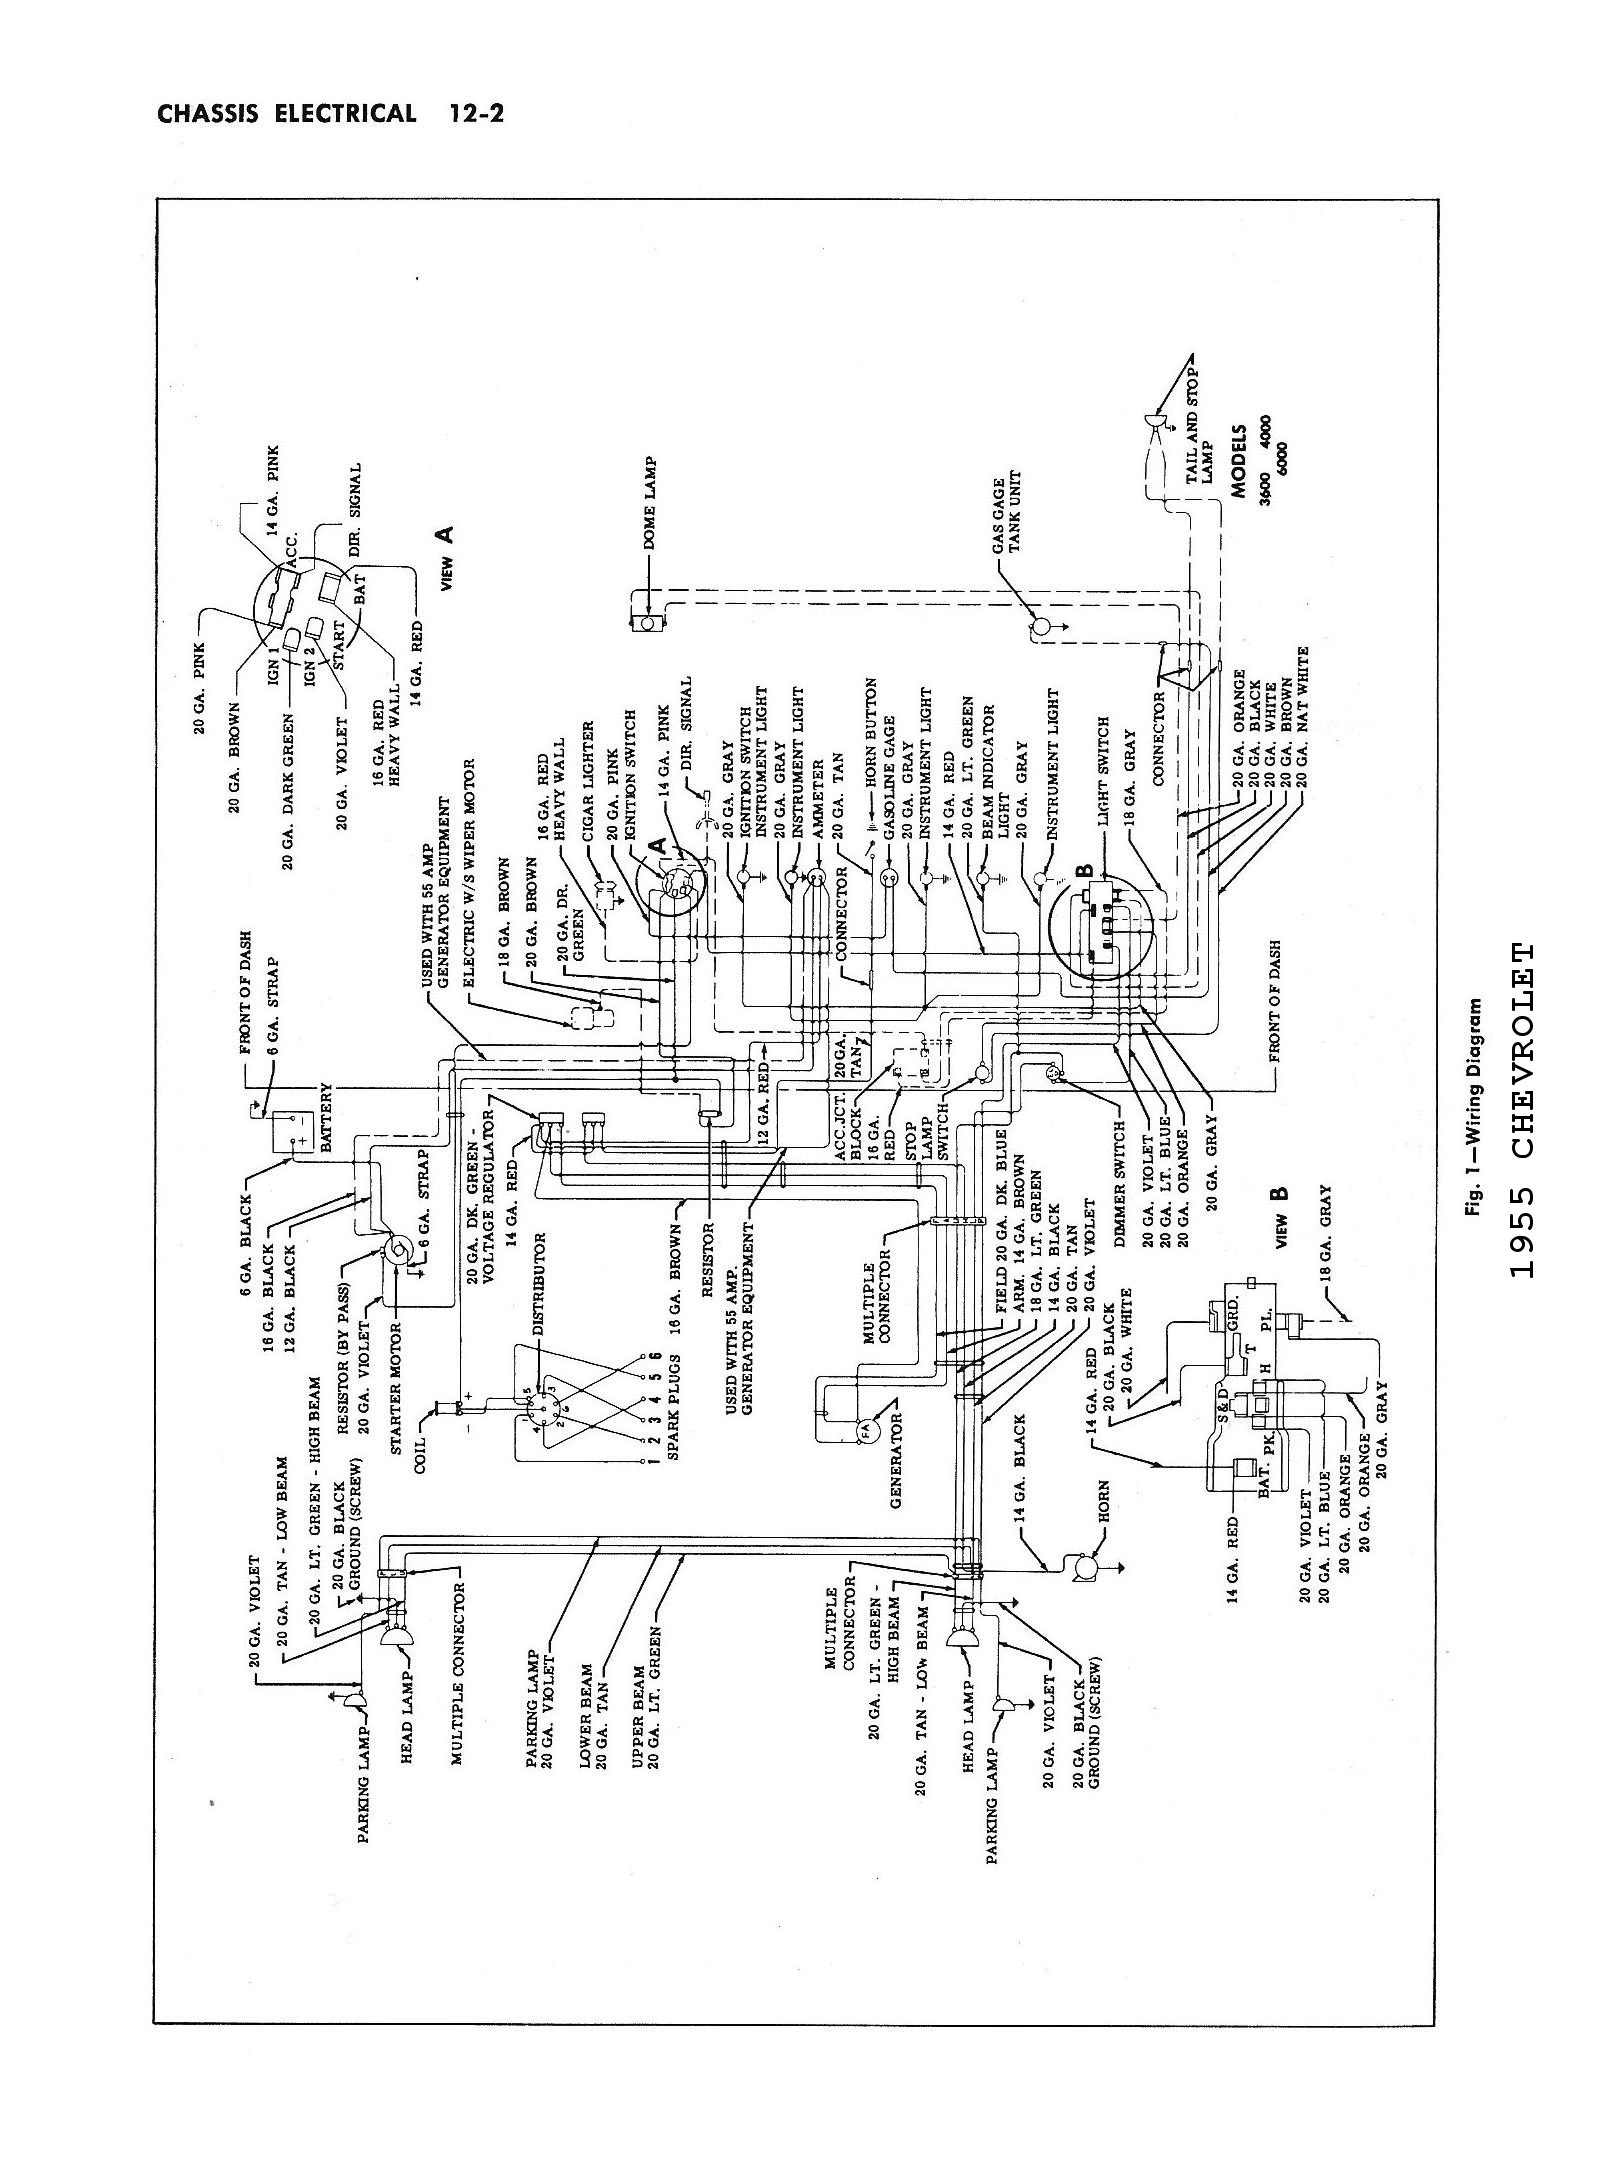 1956 chevy generator wiring detailed schematics diagram rh jppastryarts com  6 Wire Voltage Regulator Wiring Diagram One Wire Alternator Wiring Diagram